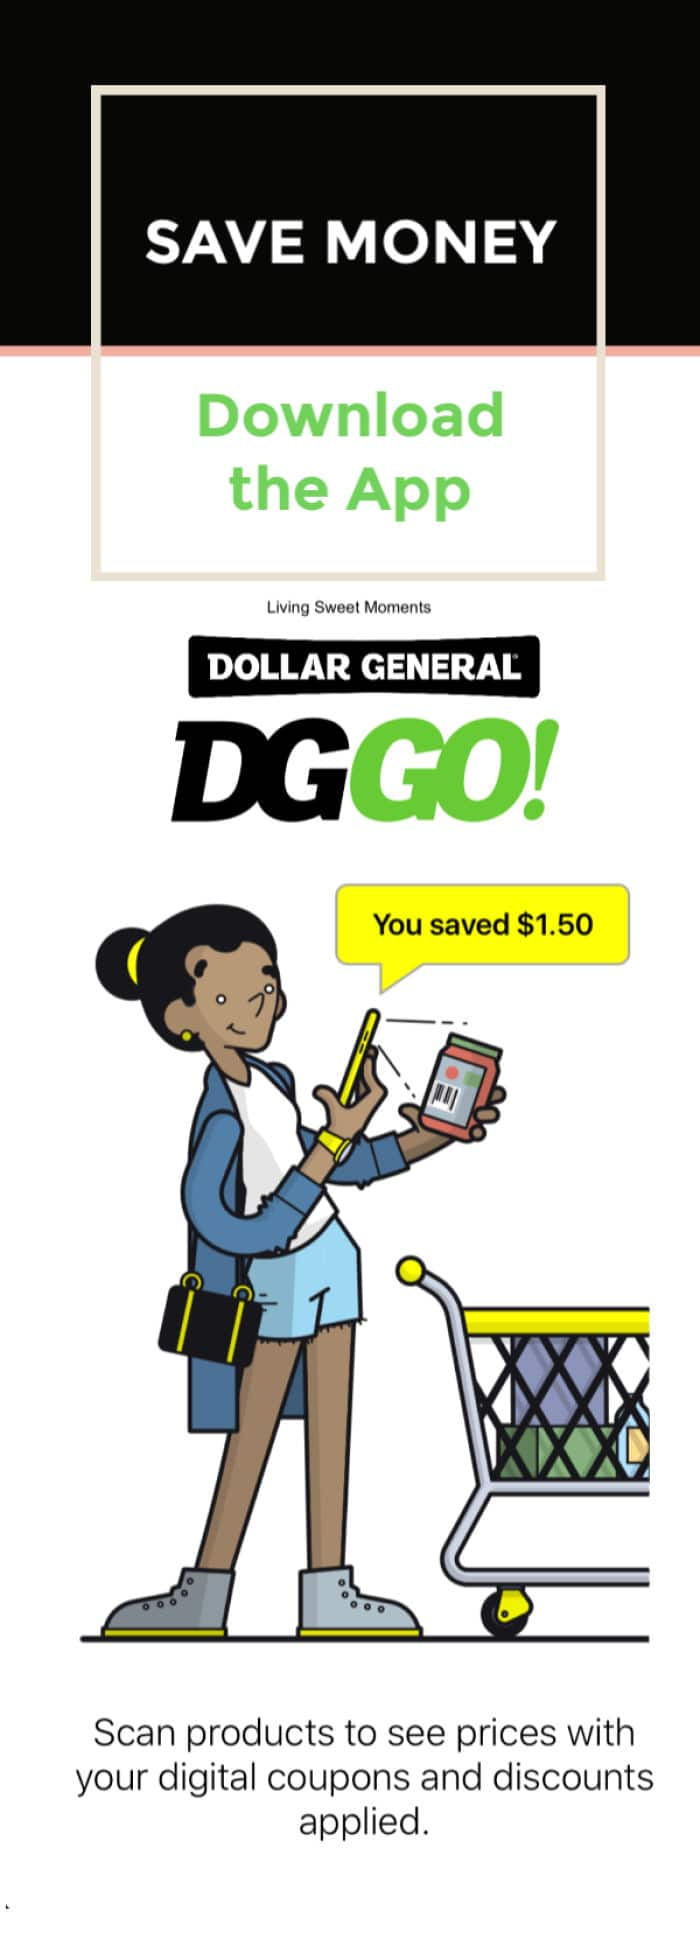 Save Time and Money with the DG GO! App